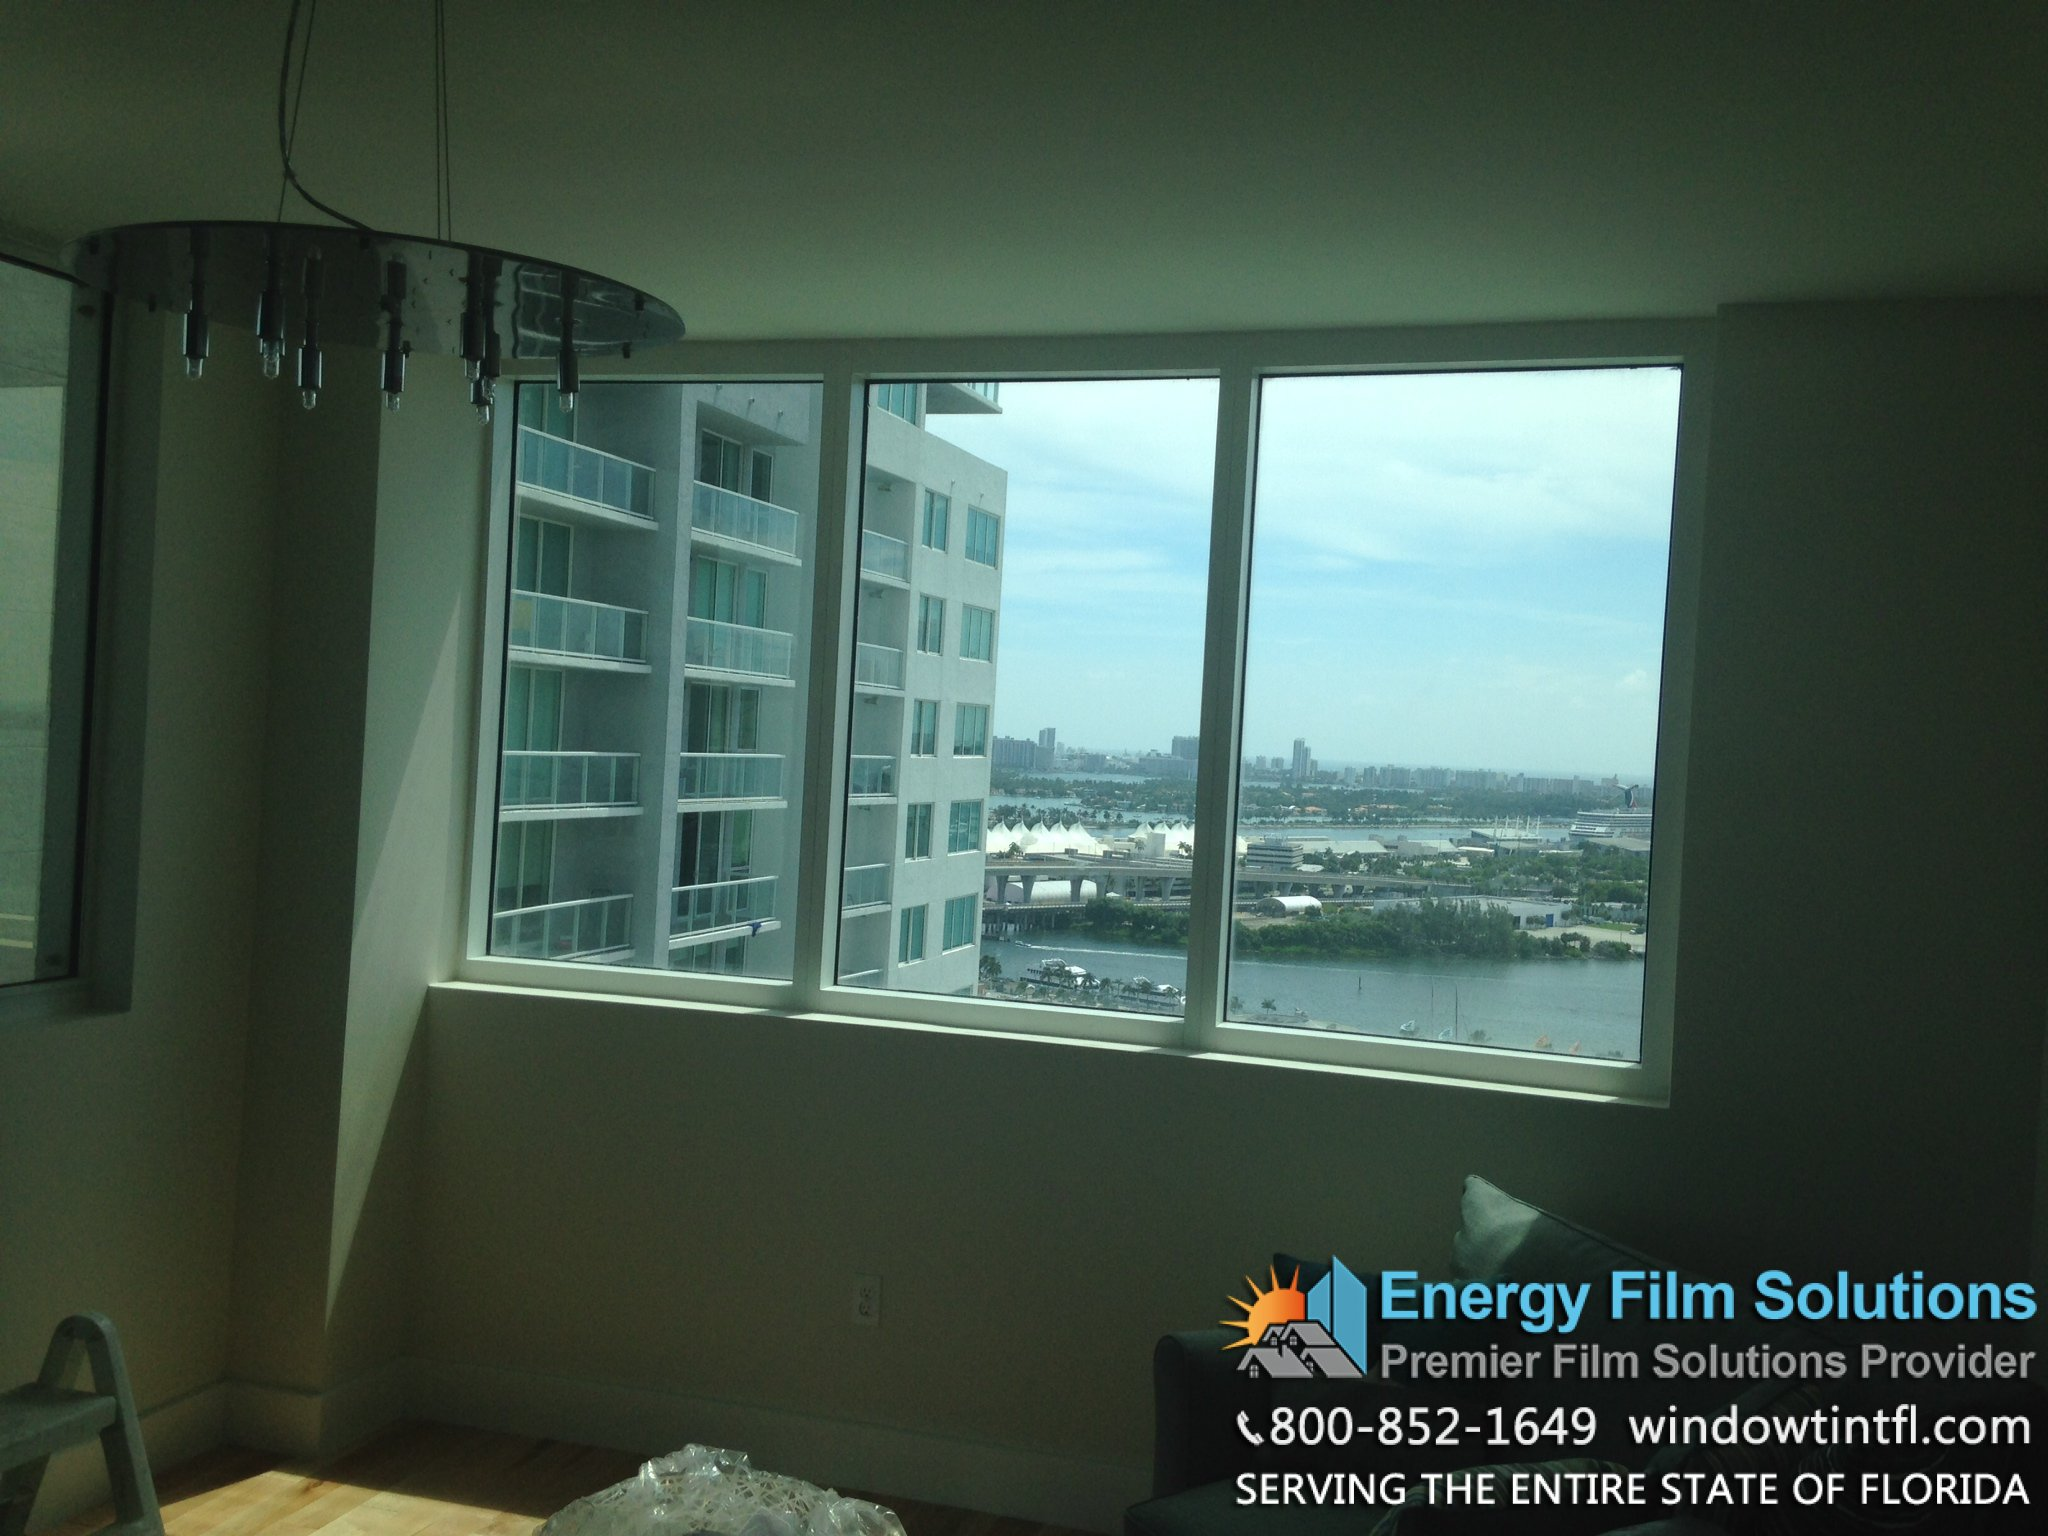 No home window film applied to Miami Condominium